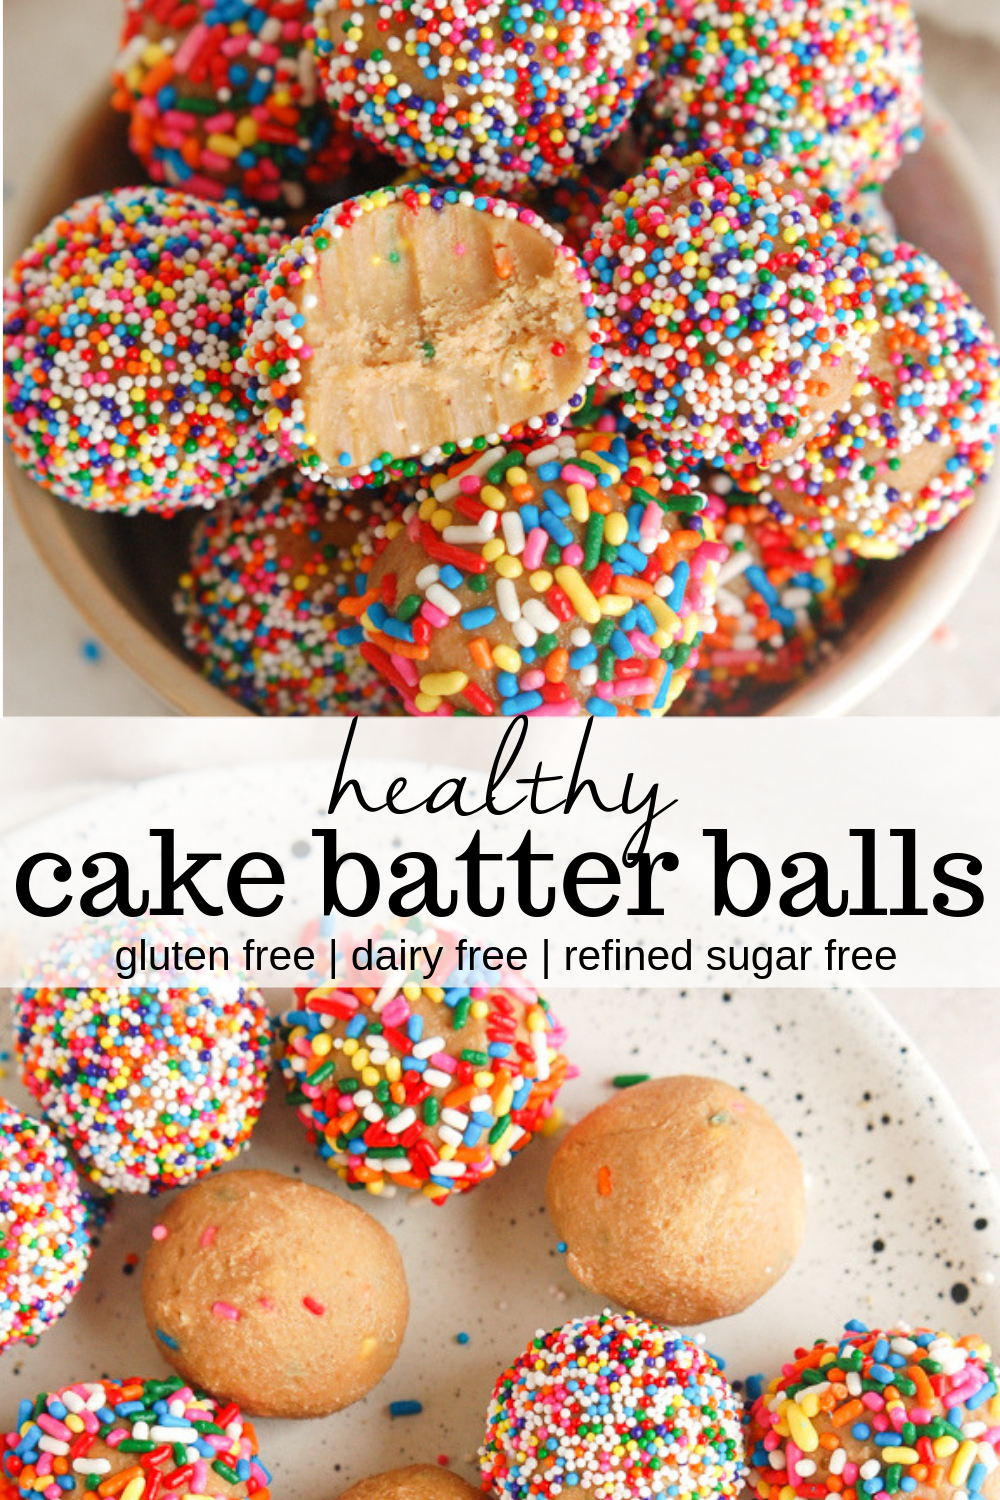 Cake Batter Balls Looking for a healthy cake batter balls recipe that is completely gluten free, vegan, tastes like cookie dough, and can also be a protein packed dessert? This five ingredient no-bake recipe is perfect for kids and can be made in five minutes or less.Looking for a healthy cake batter balls recipe that is completely gl...